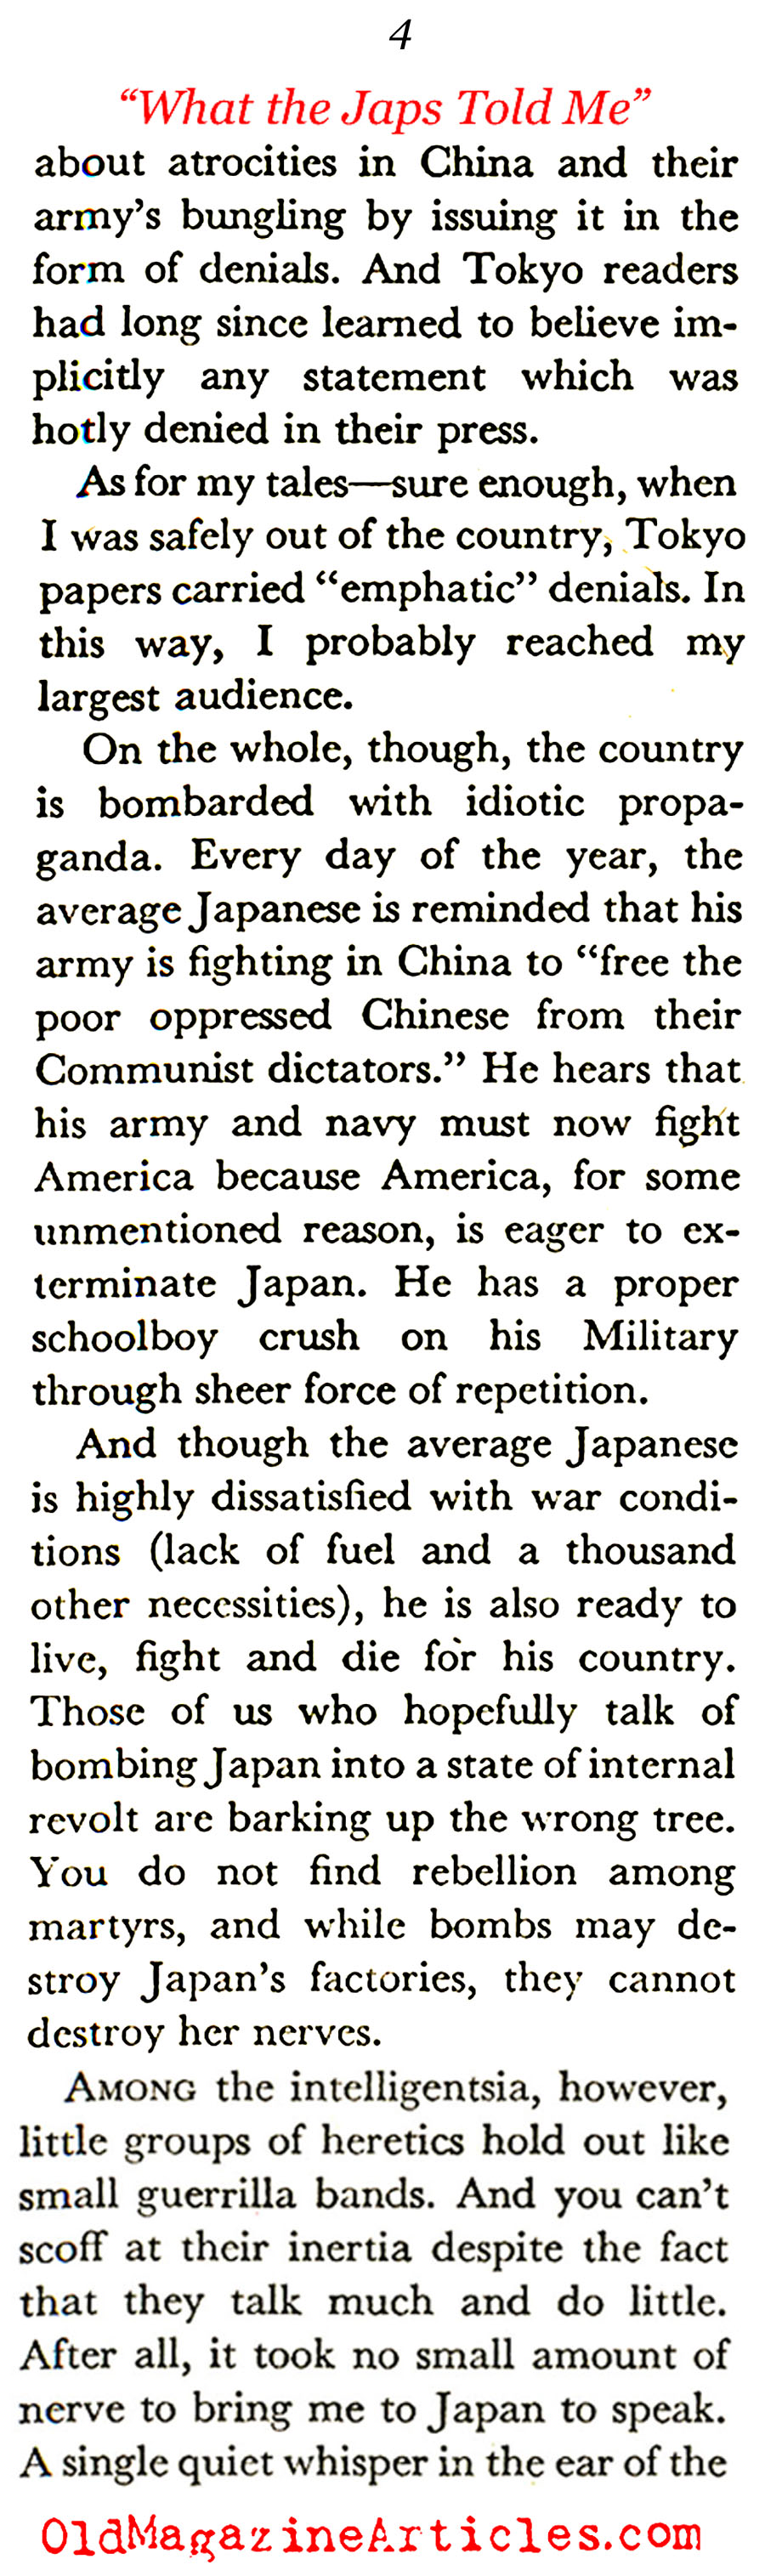 The Japanese Subversives (Coronet Magazine, 1943)